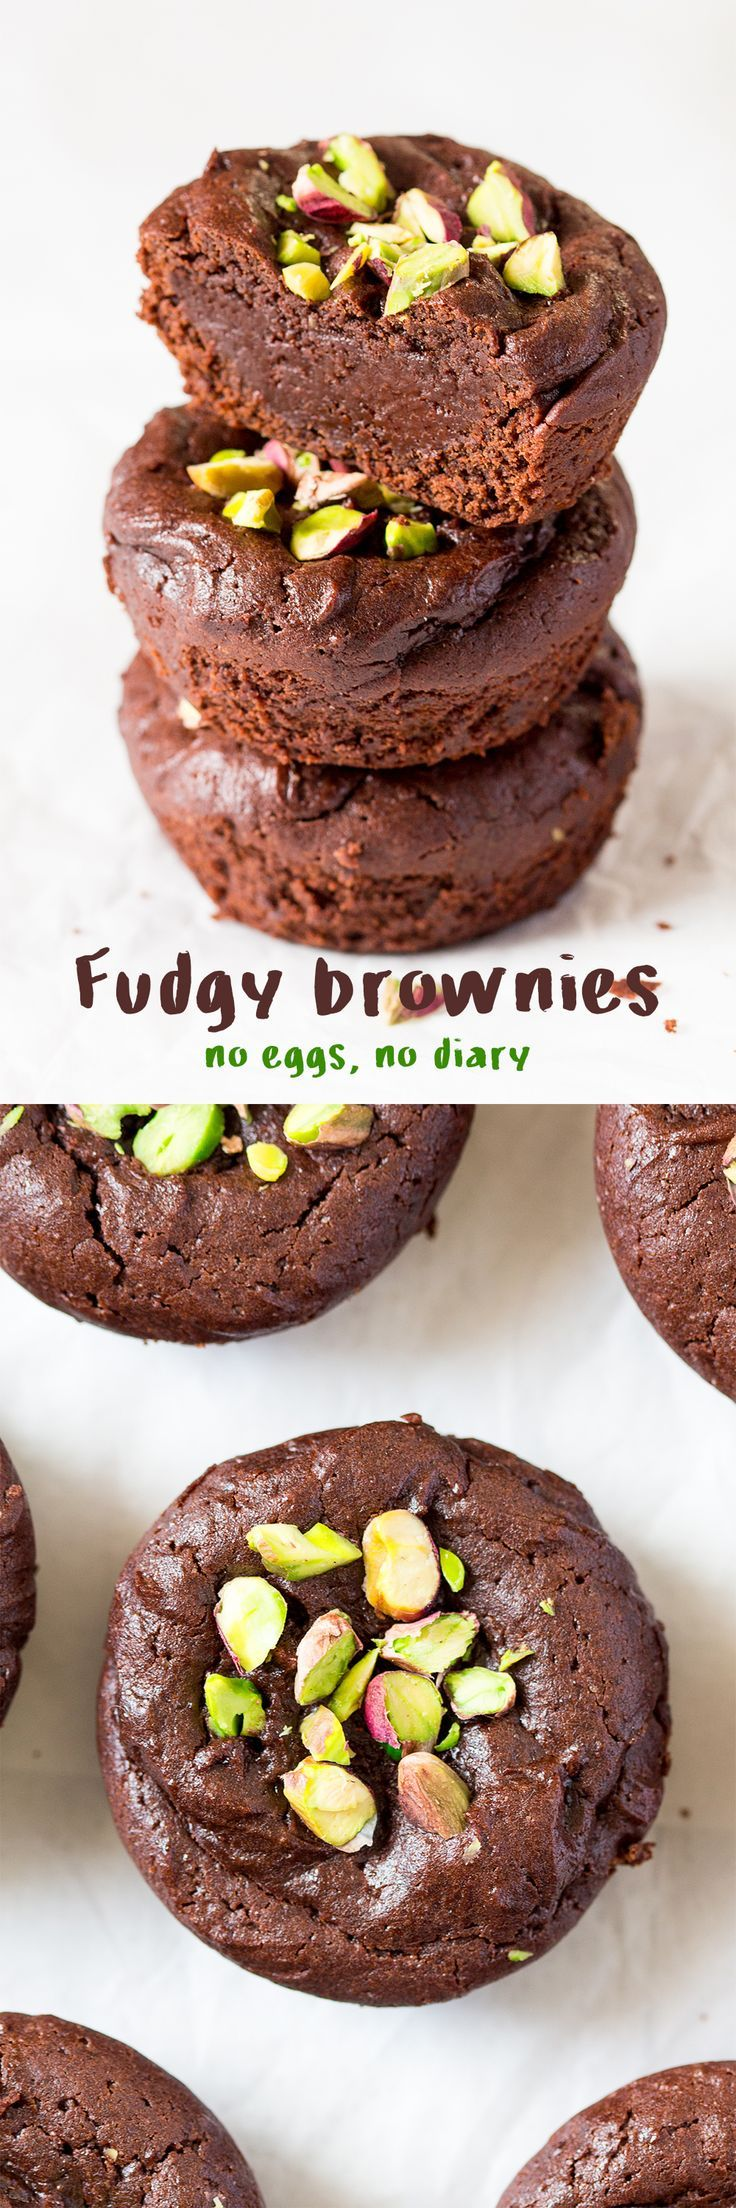 These #fudgy #brownies are #easy and quick to make. They're are #vegan but you would have never guessed! #recipe #recipes #dessert #treat #vegetarian #aquafaba #cake #brownie #chocolate